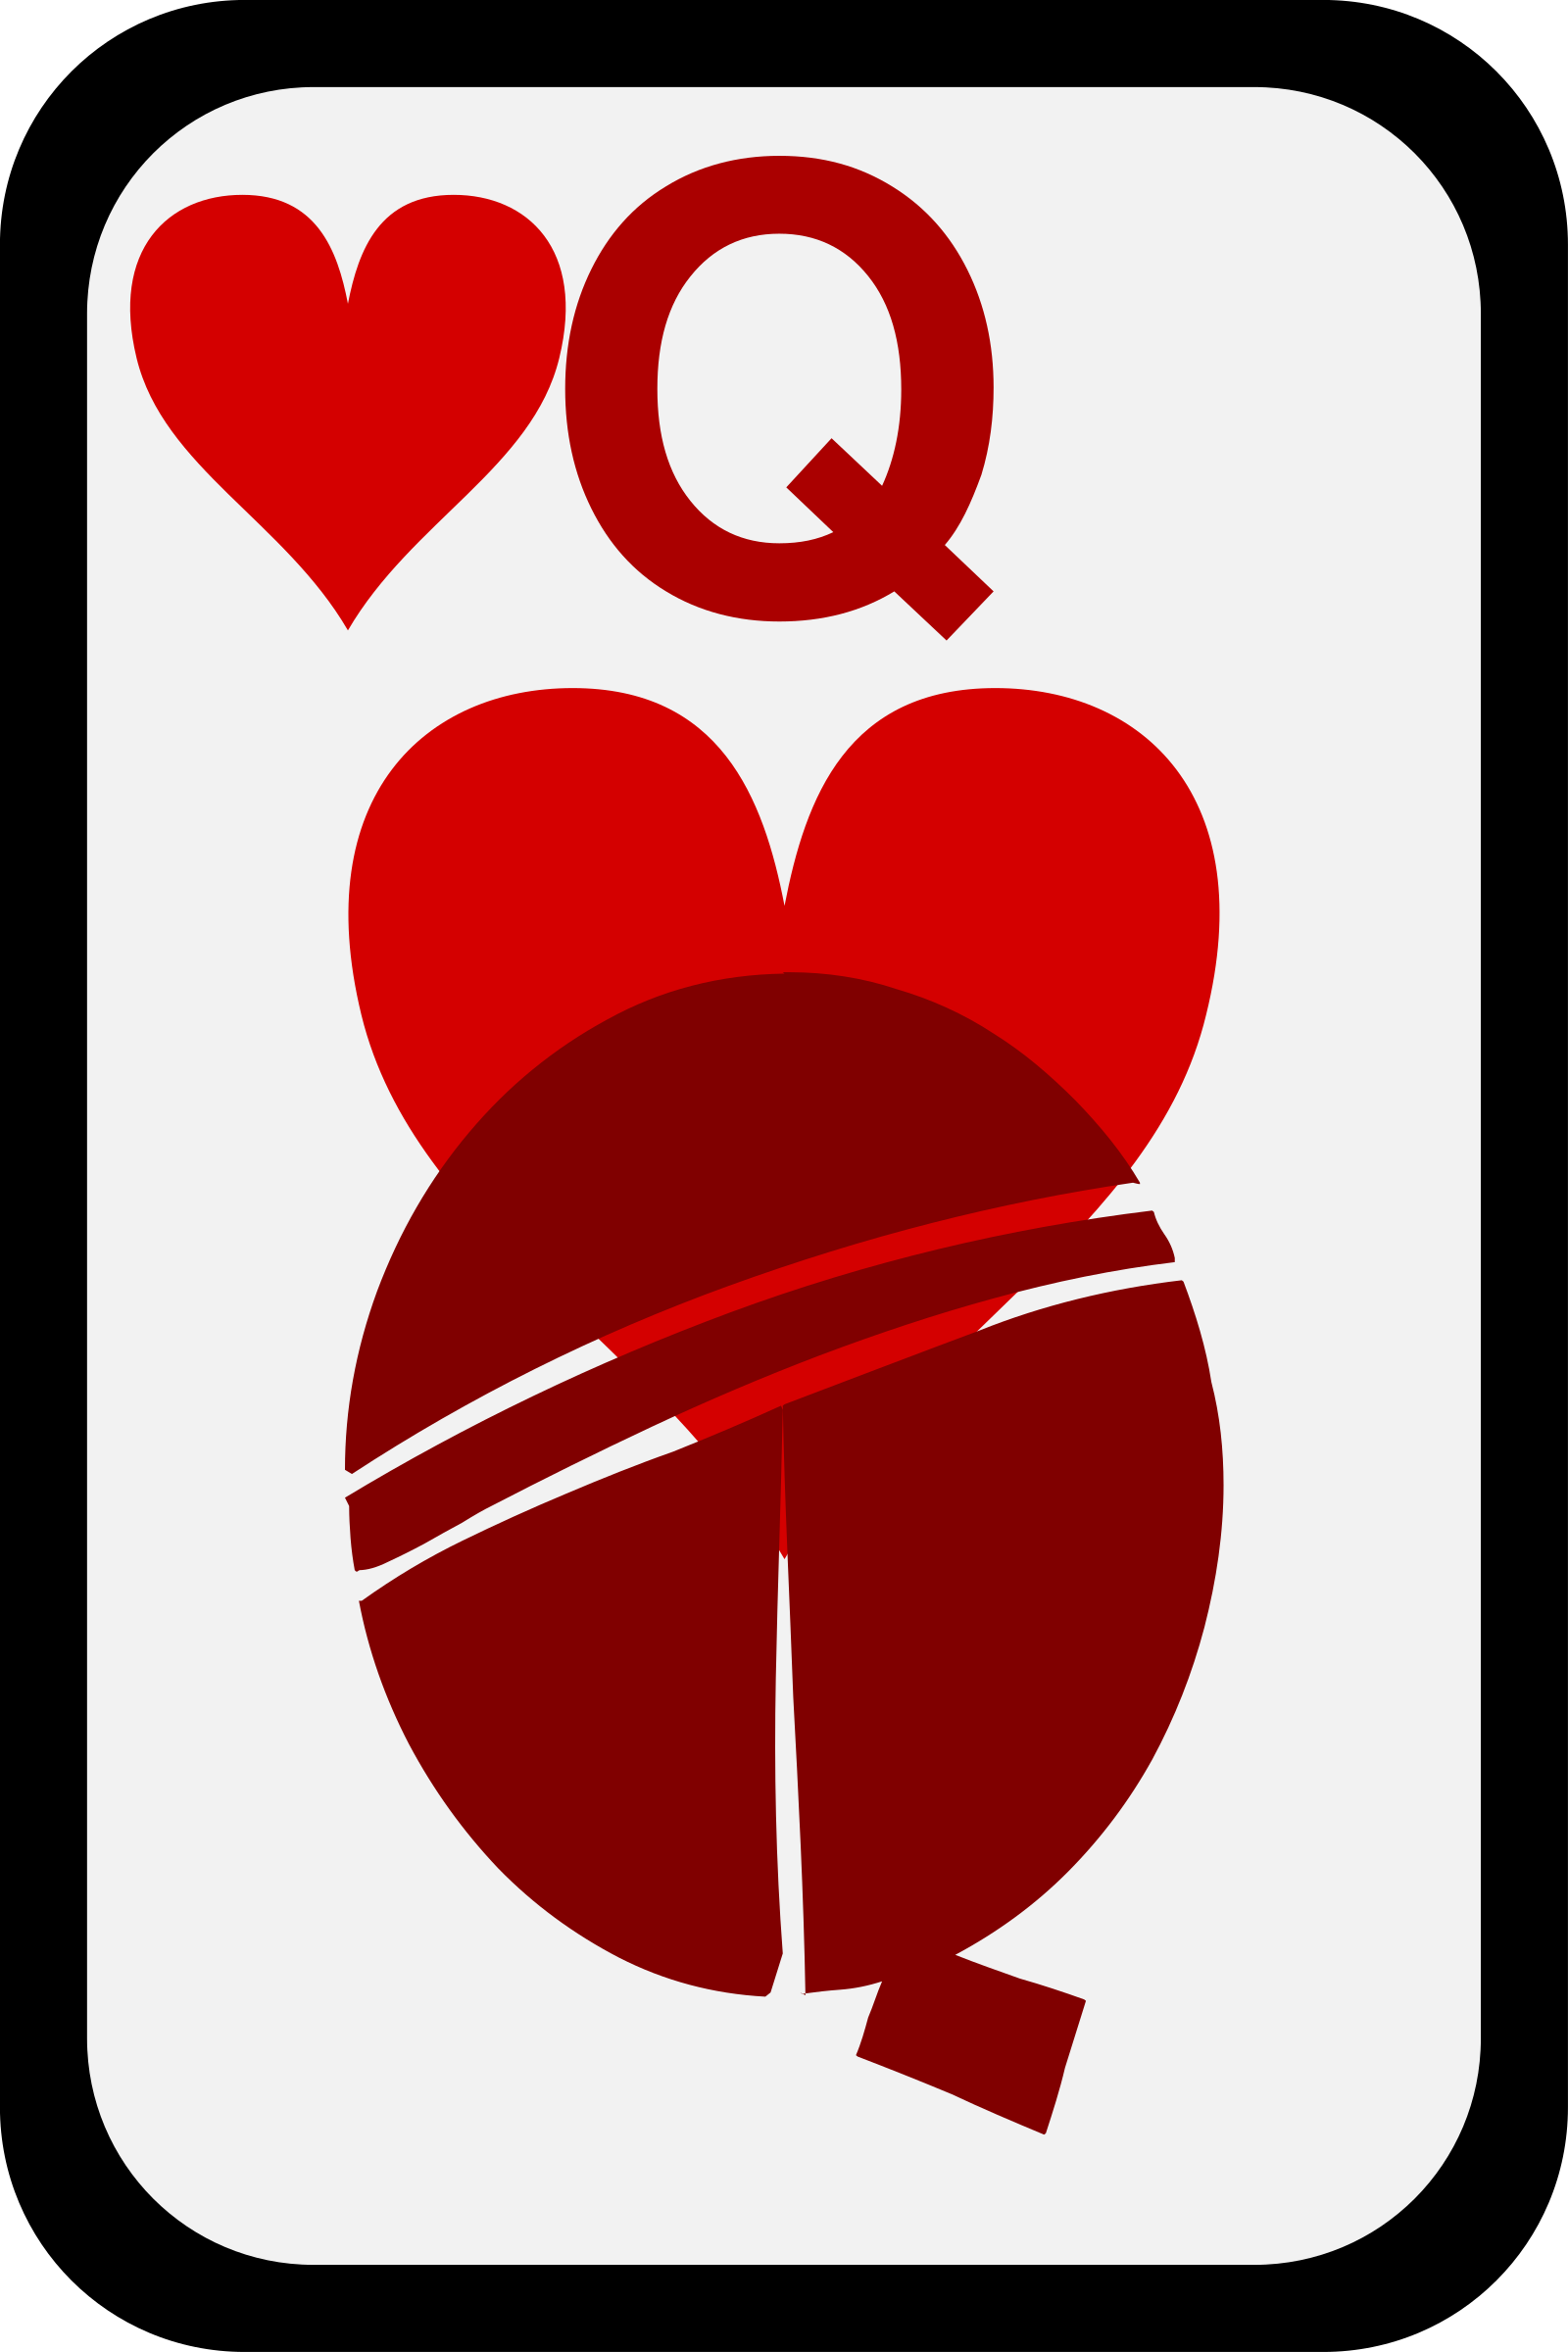 Queen of Hearts by momoko